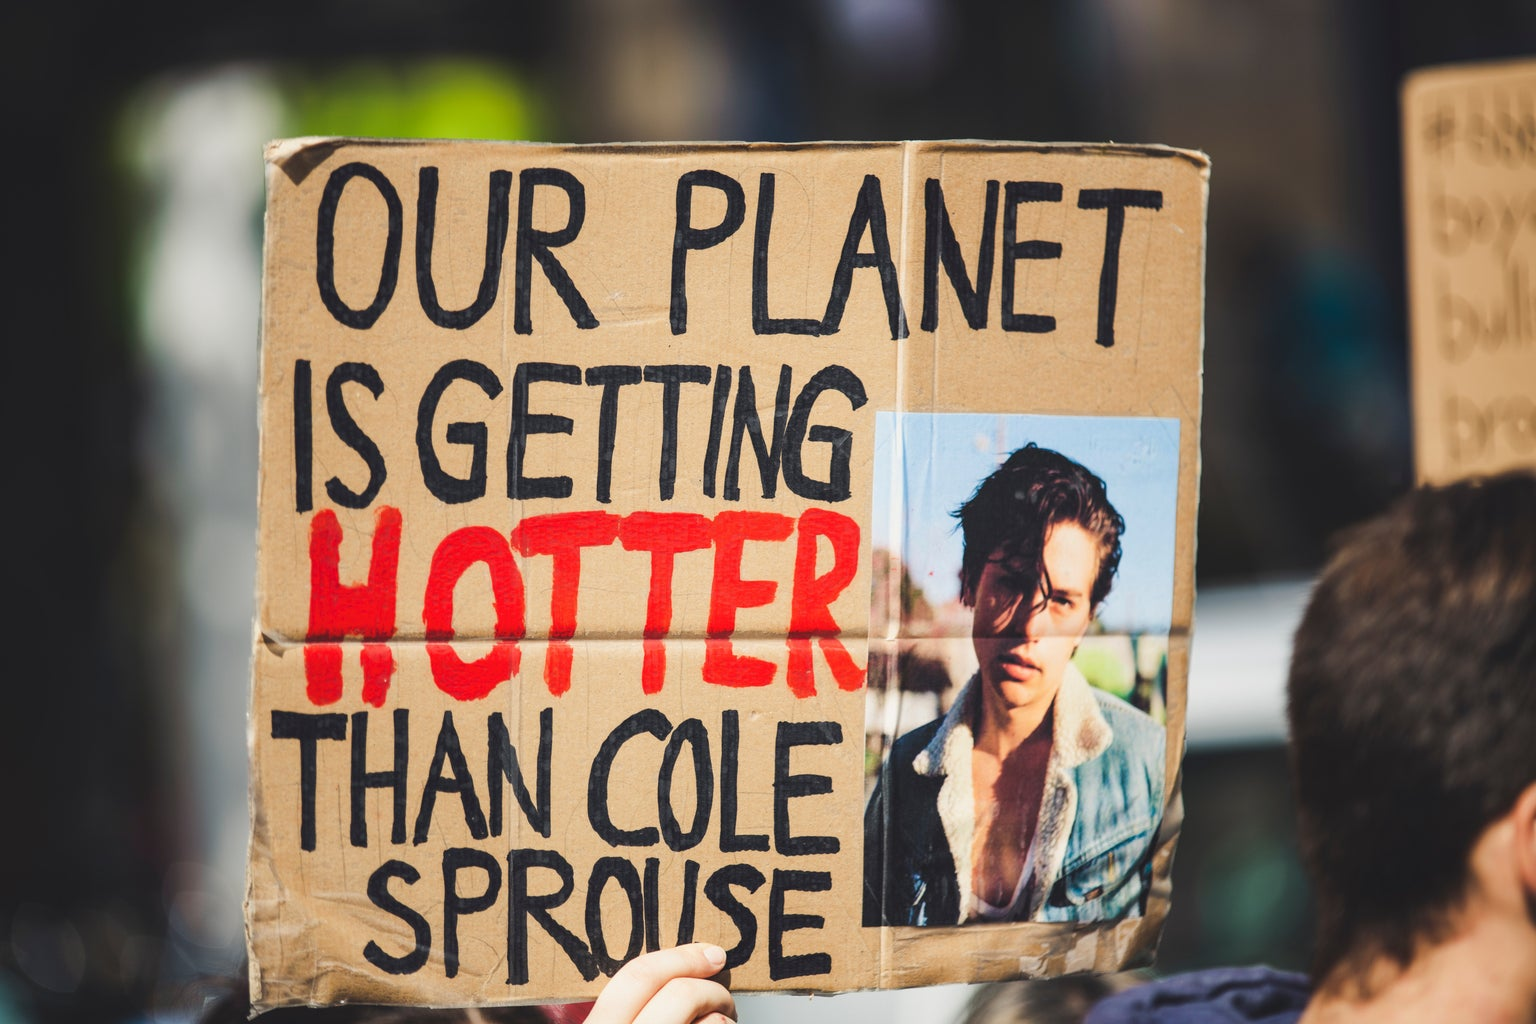 ""\""""Our planet is getting hotter than Cole Sprouse""""""1536|1024|?|en|2|4fac7b61311287ed1dfbfda4fffd6757|False|UNLIKELY|0.3129934072494507